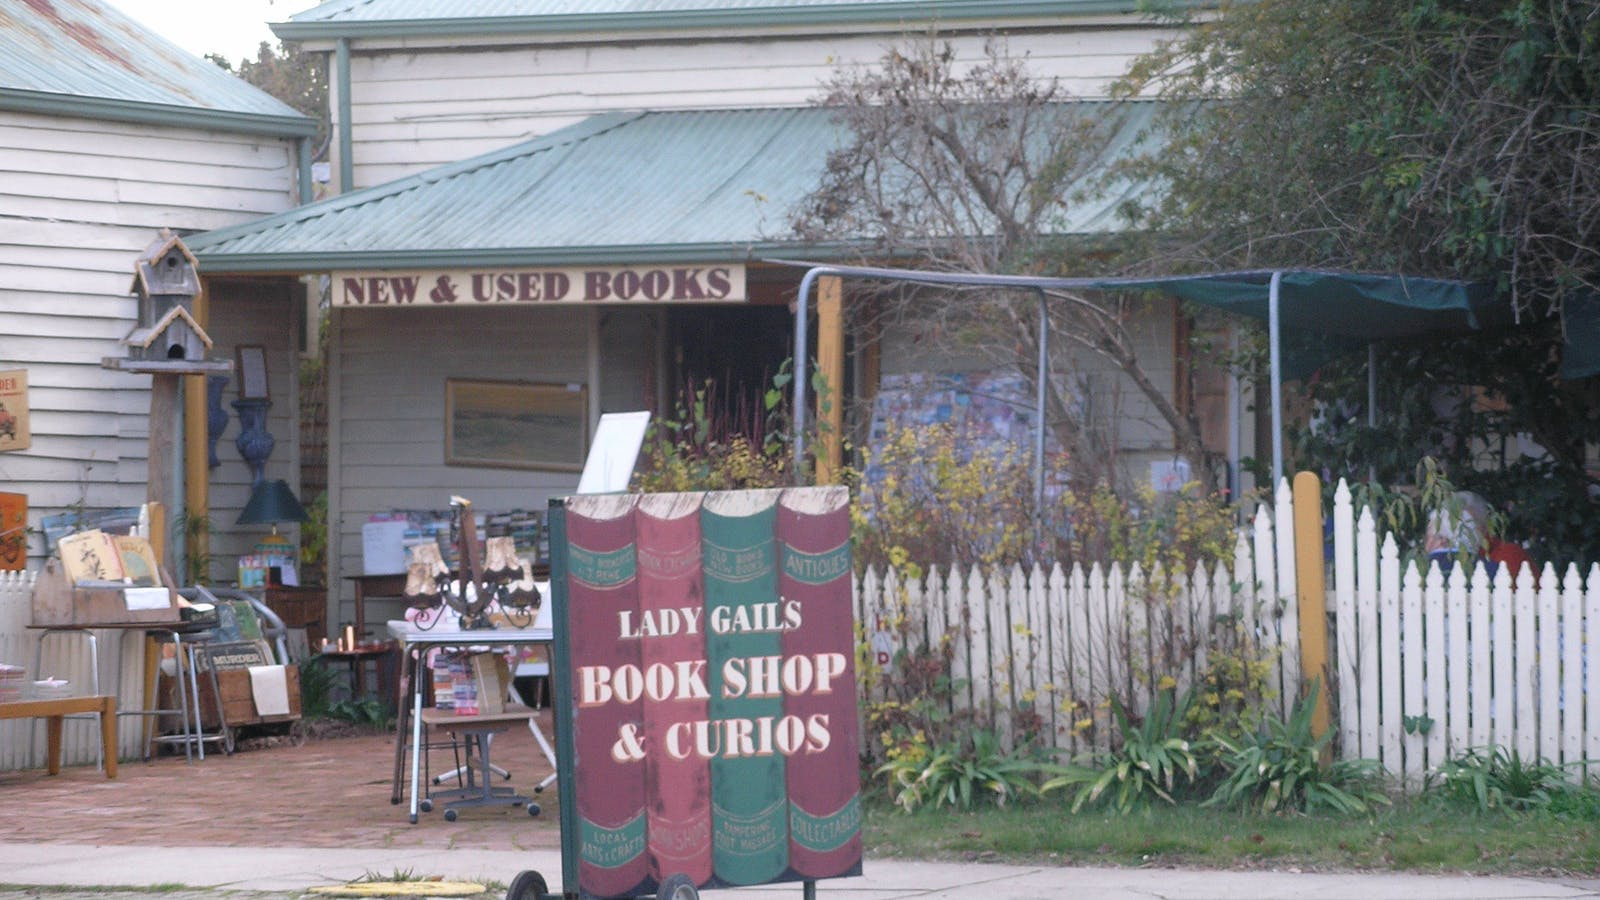 Lady Gails Bookshop and Curios